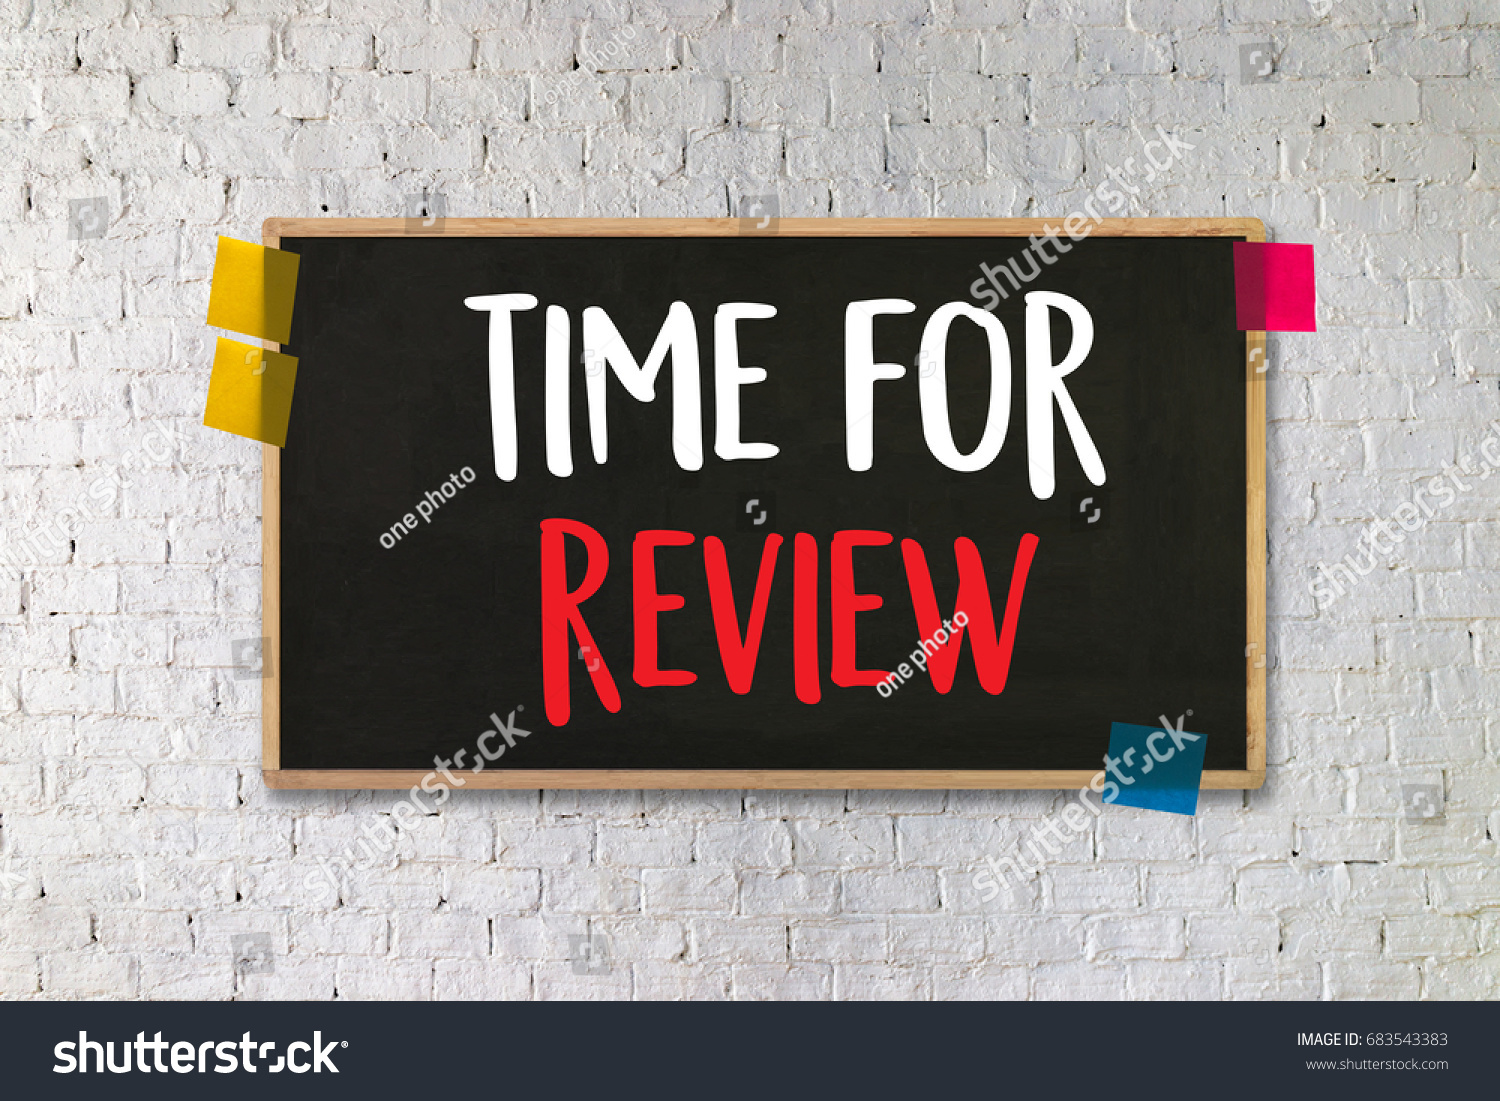 Online Reviews Evaluation time for review  Inspection Assessment Auditing #683543383